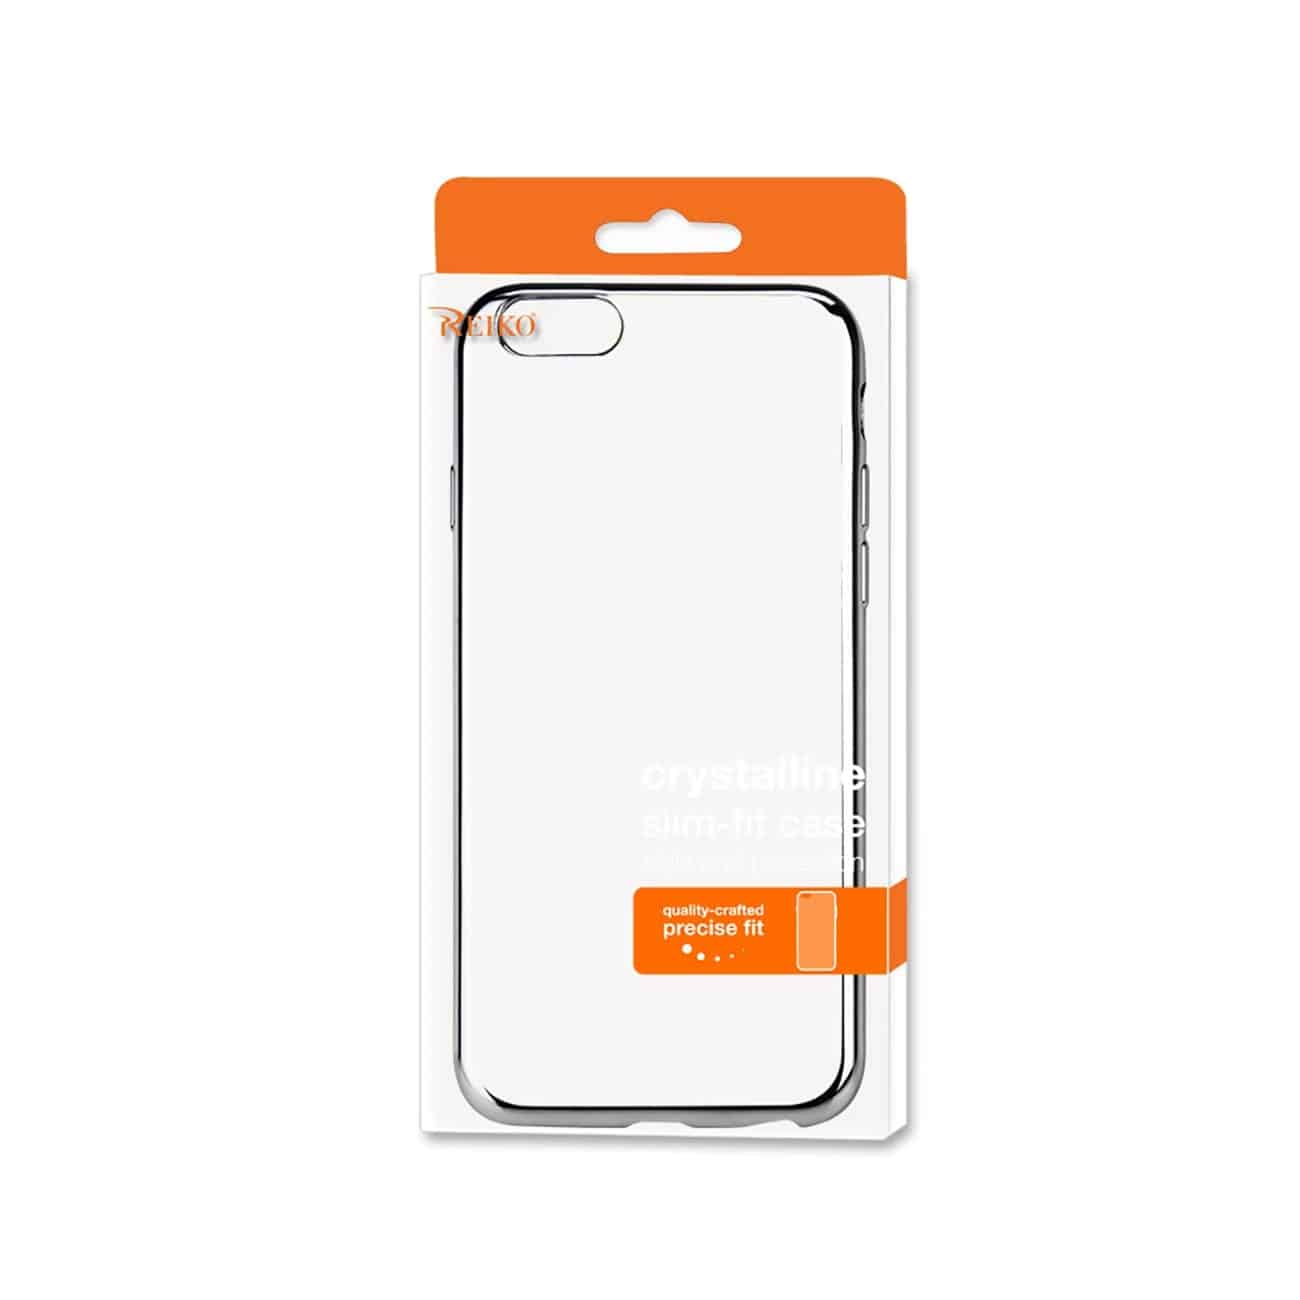 IPHONE 6 PLUS FRAME CASE WITH CLEAR BACK IN SILVER